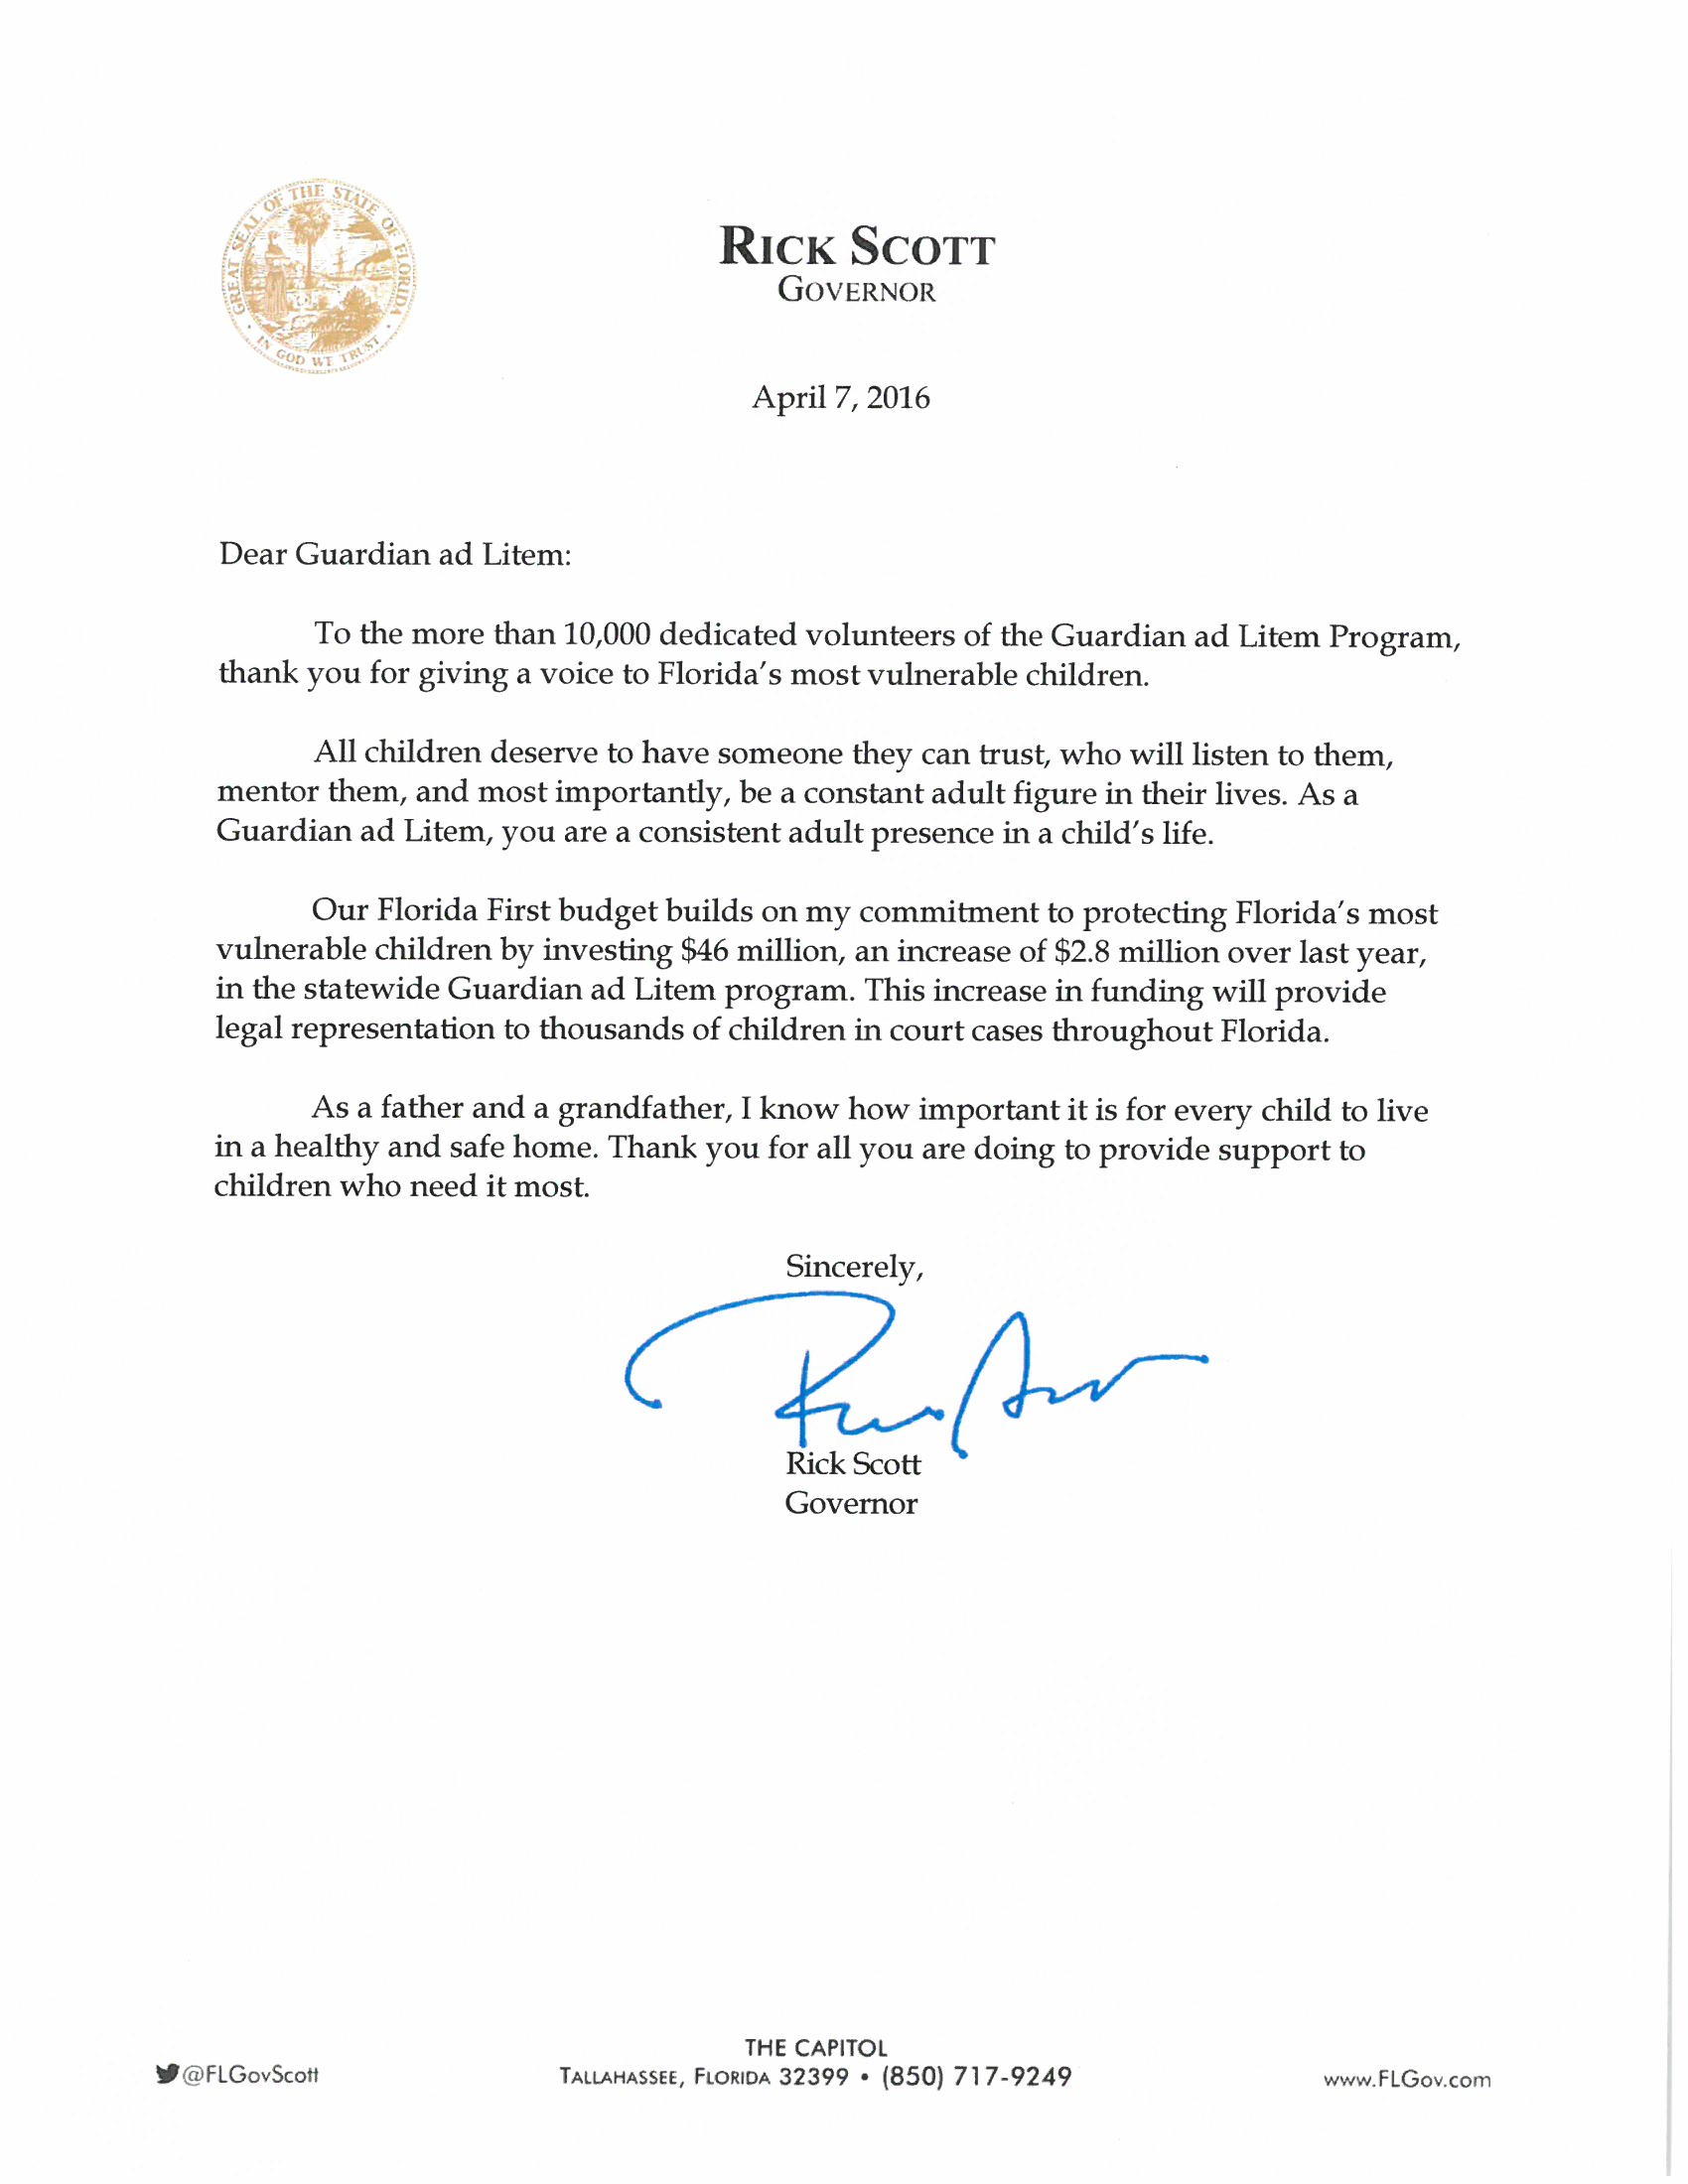 Governor Rick Scotts Personal Letter to GAL Volunteers Thank you – Personal Thank You Letter